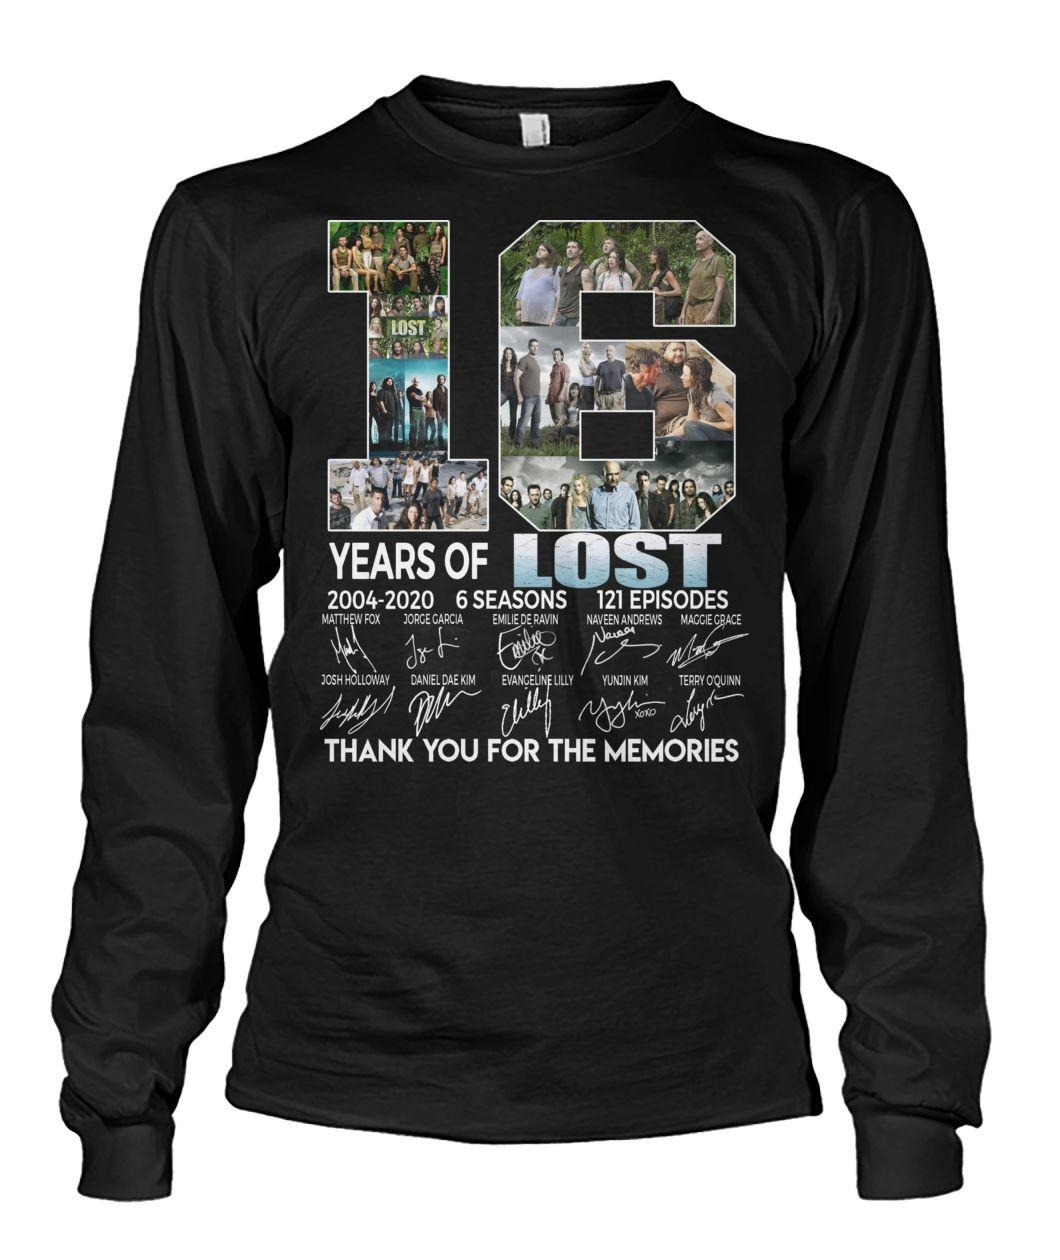 16 Years of Lost 2004-2020 6 seasons 121 episodes signatures shirt